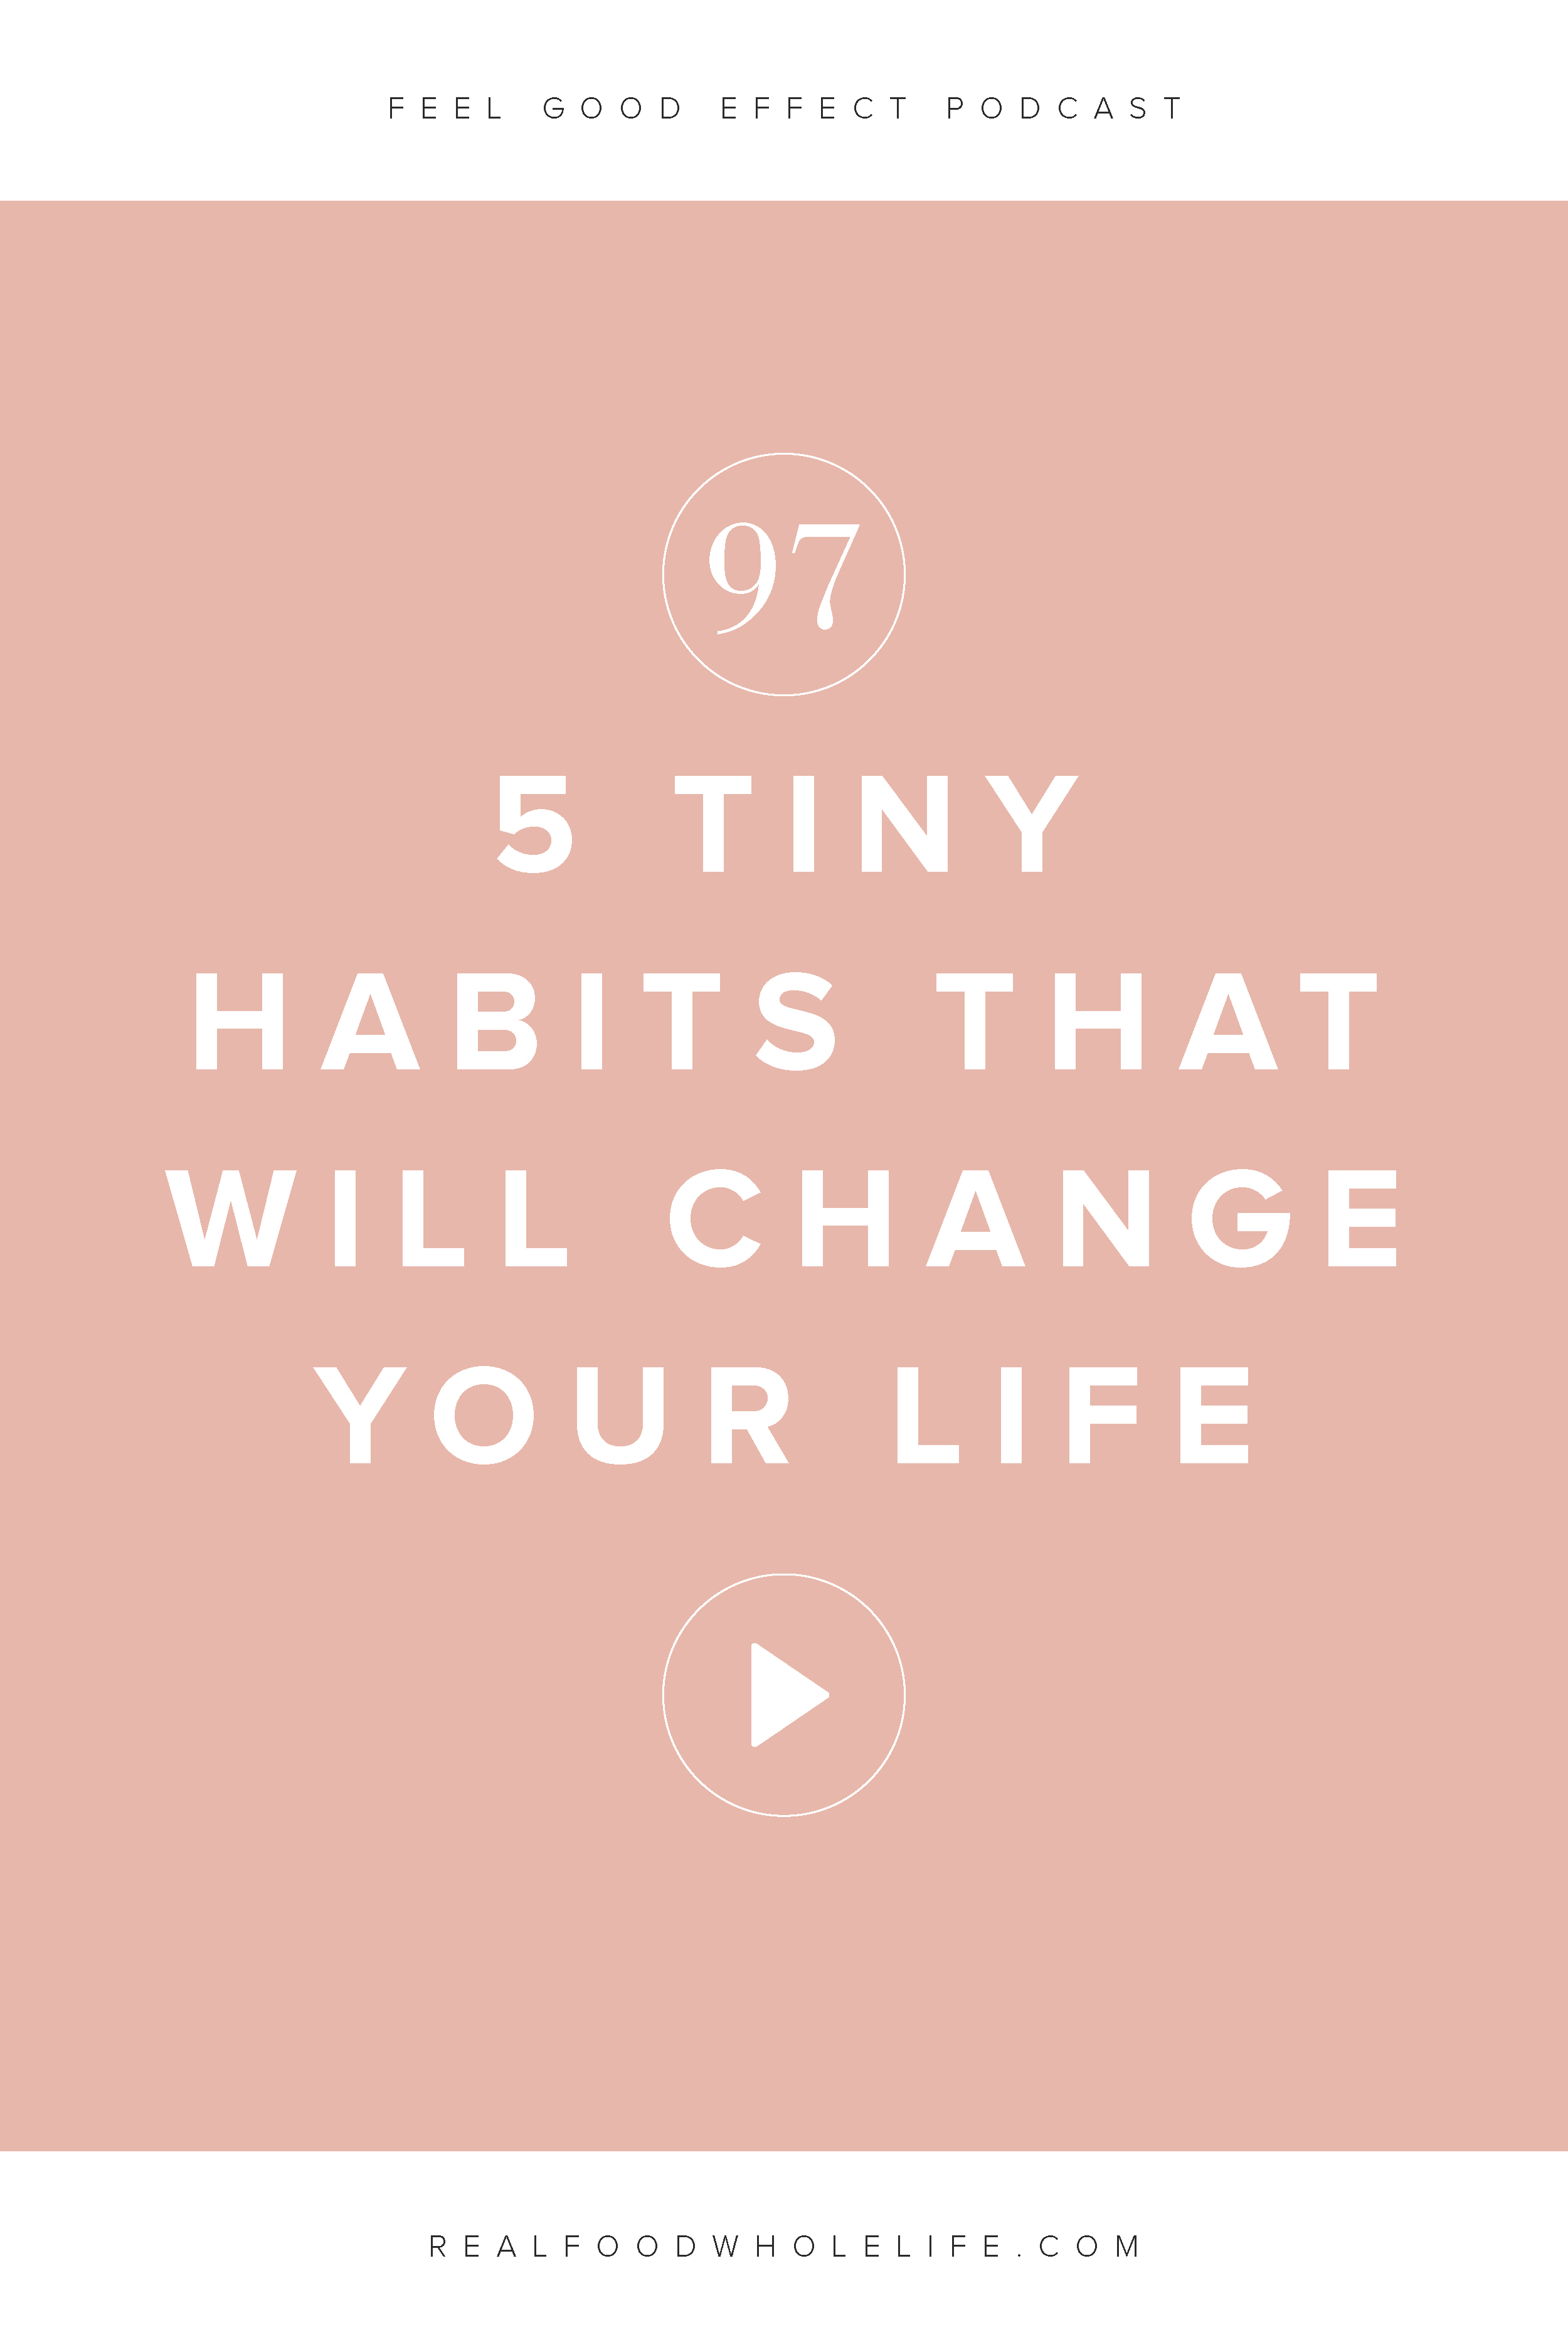 5 Tiny Habits That Will Change Your Life. Summer Masterclass from the Feel Good Effect Podcast. #realfoodwholelife #feelgoodeffect #podcast #wellness #habits #routine